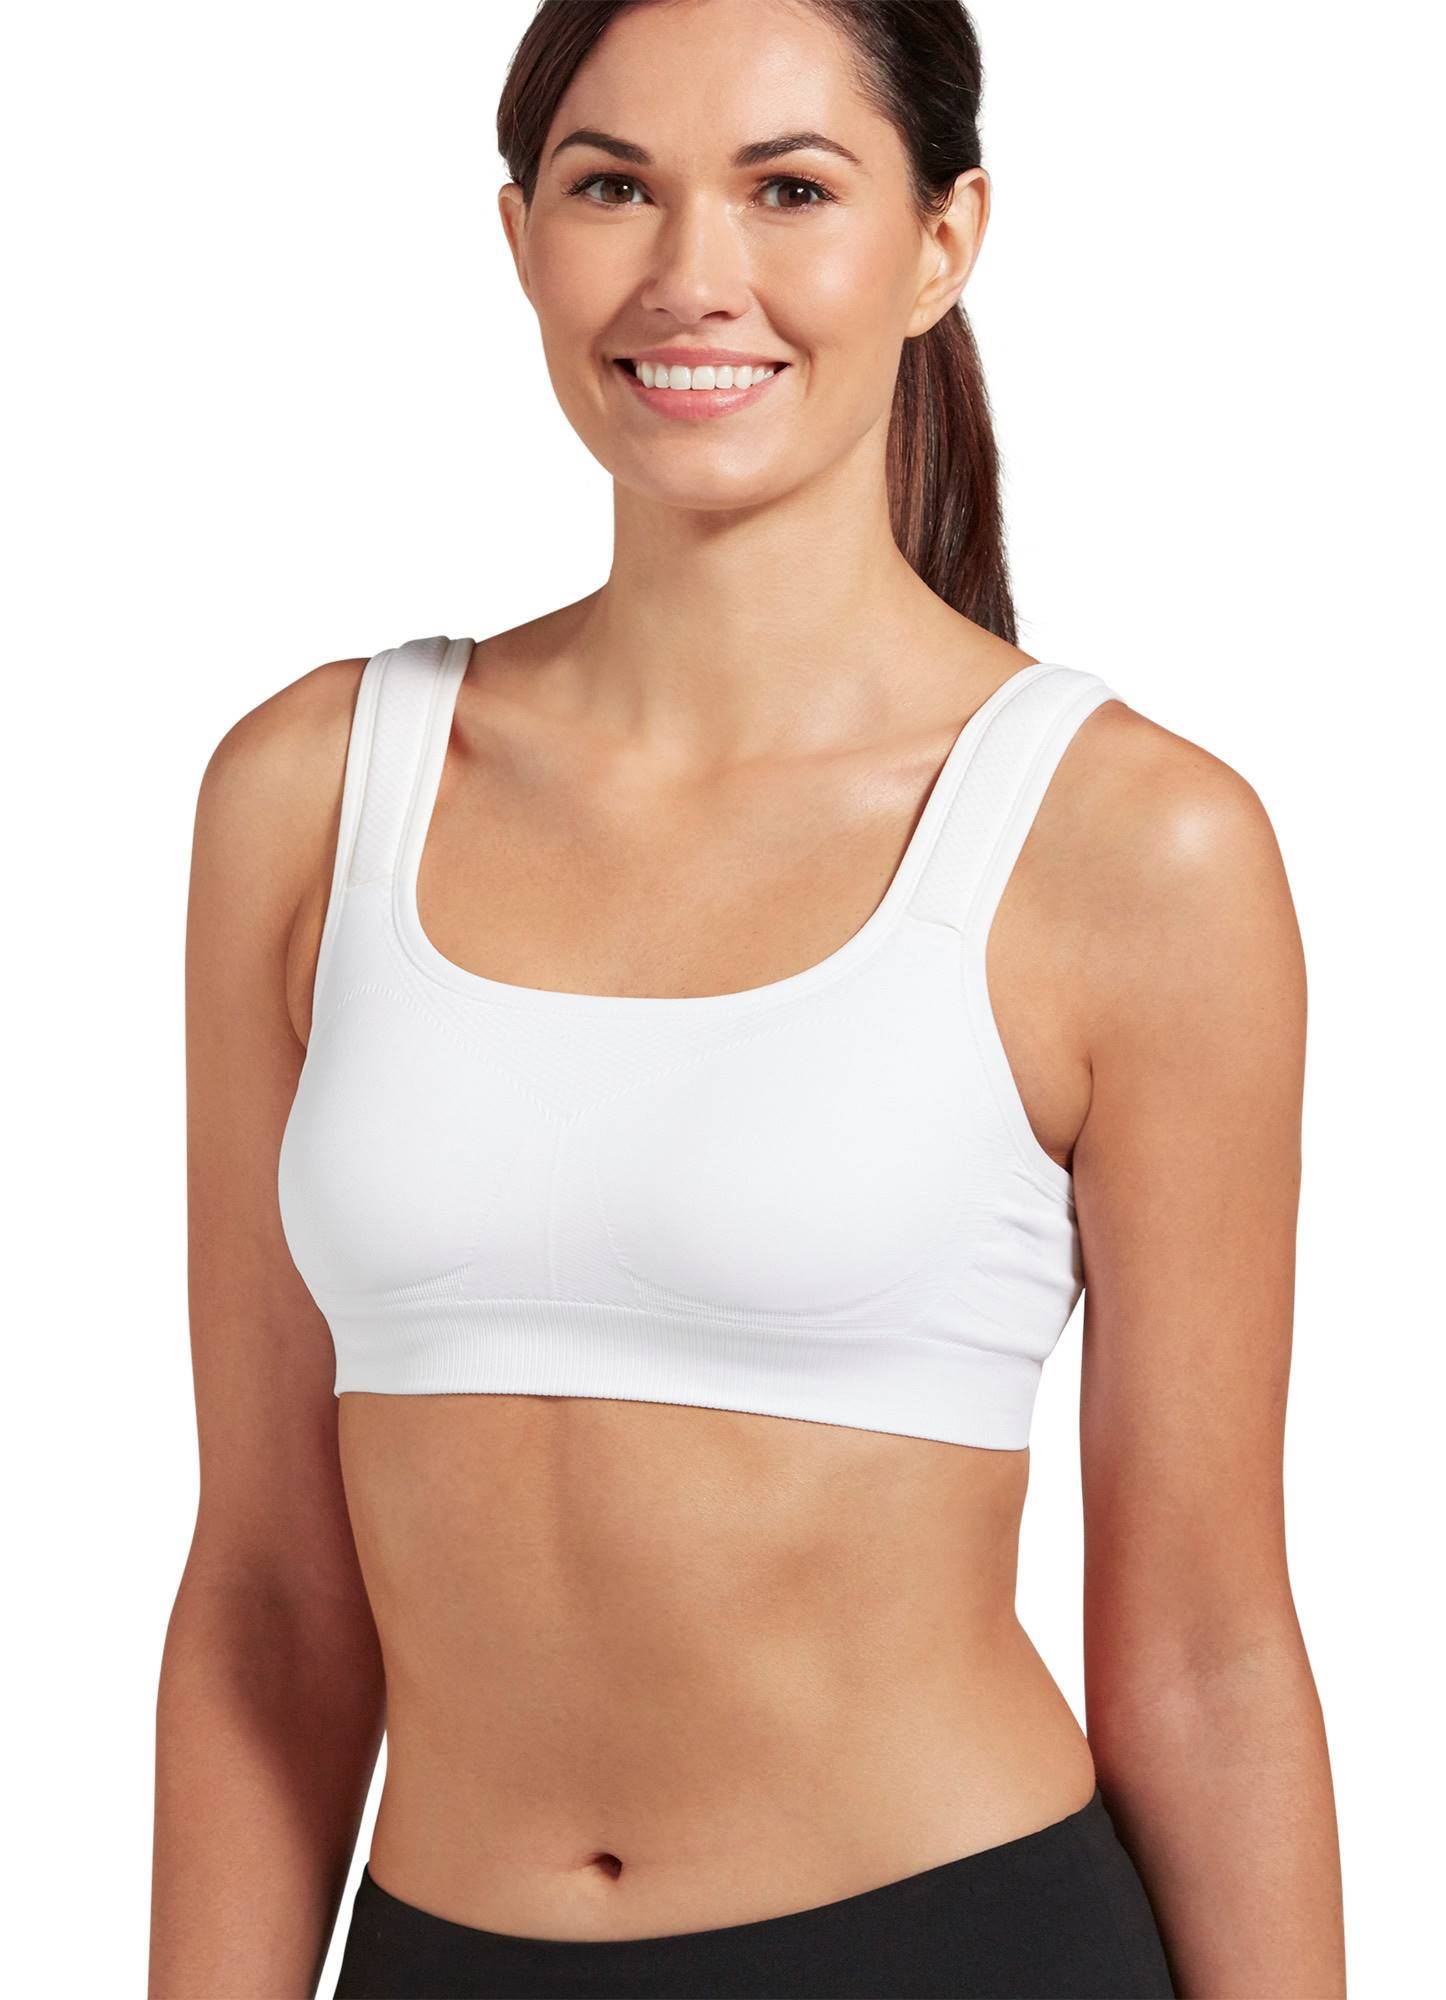 Active Workout Racerback Seamless Sports Bra & Tight Fitting for Cabales Women's 3-Pack Seamless Wireless Sports Bra with Removable Pads. by Cabales. $ - $ $ 16 $ 18 99 Prime. FREE Shipping on eligible orders. Some sizes/colors are Prime eligible. out of 5 stars 2,